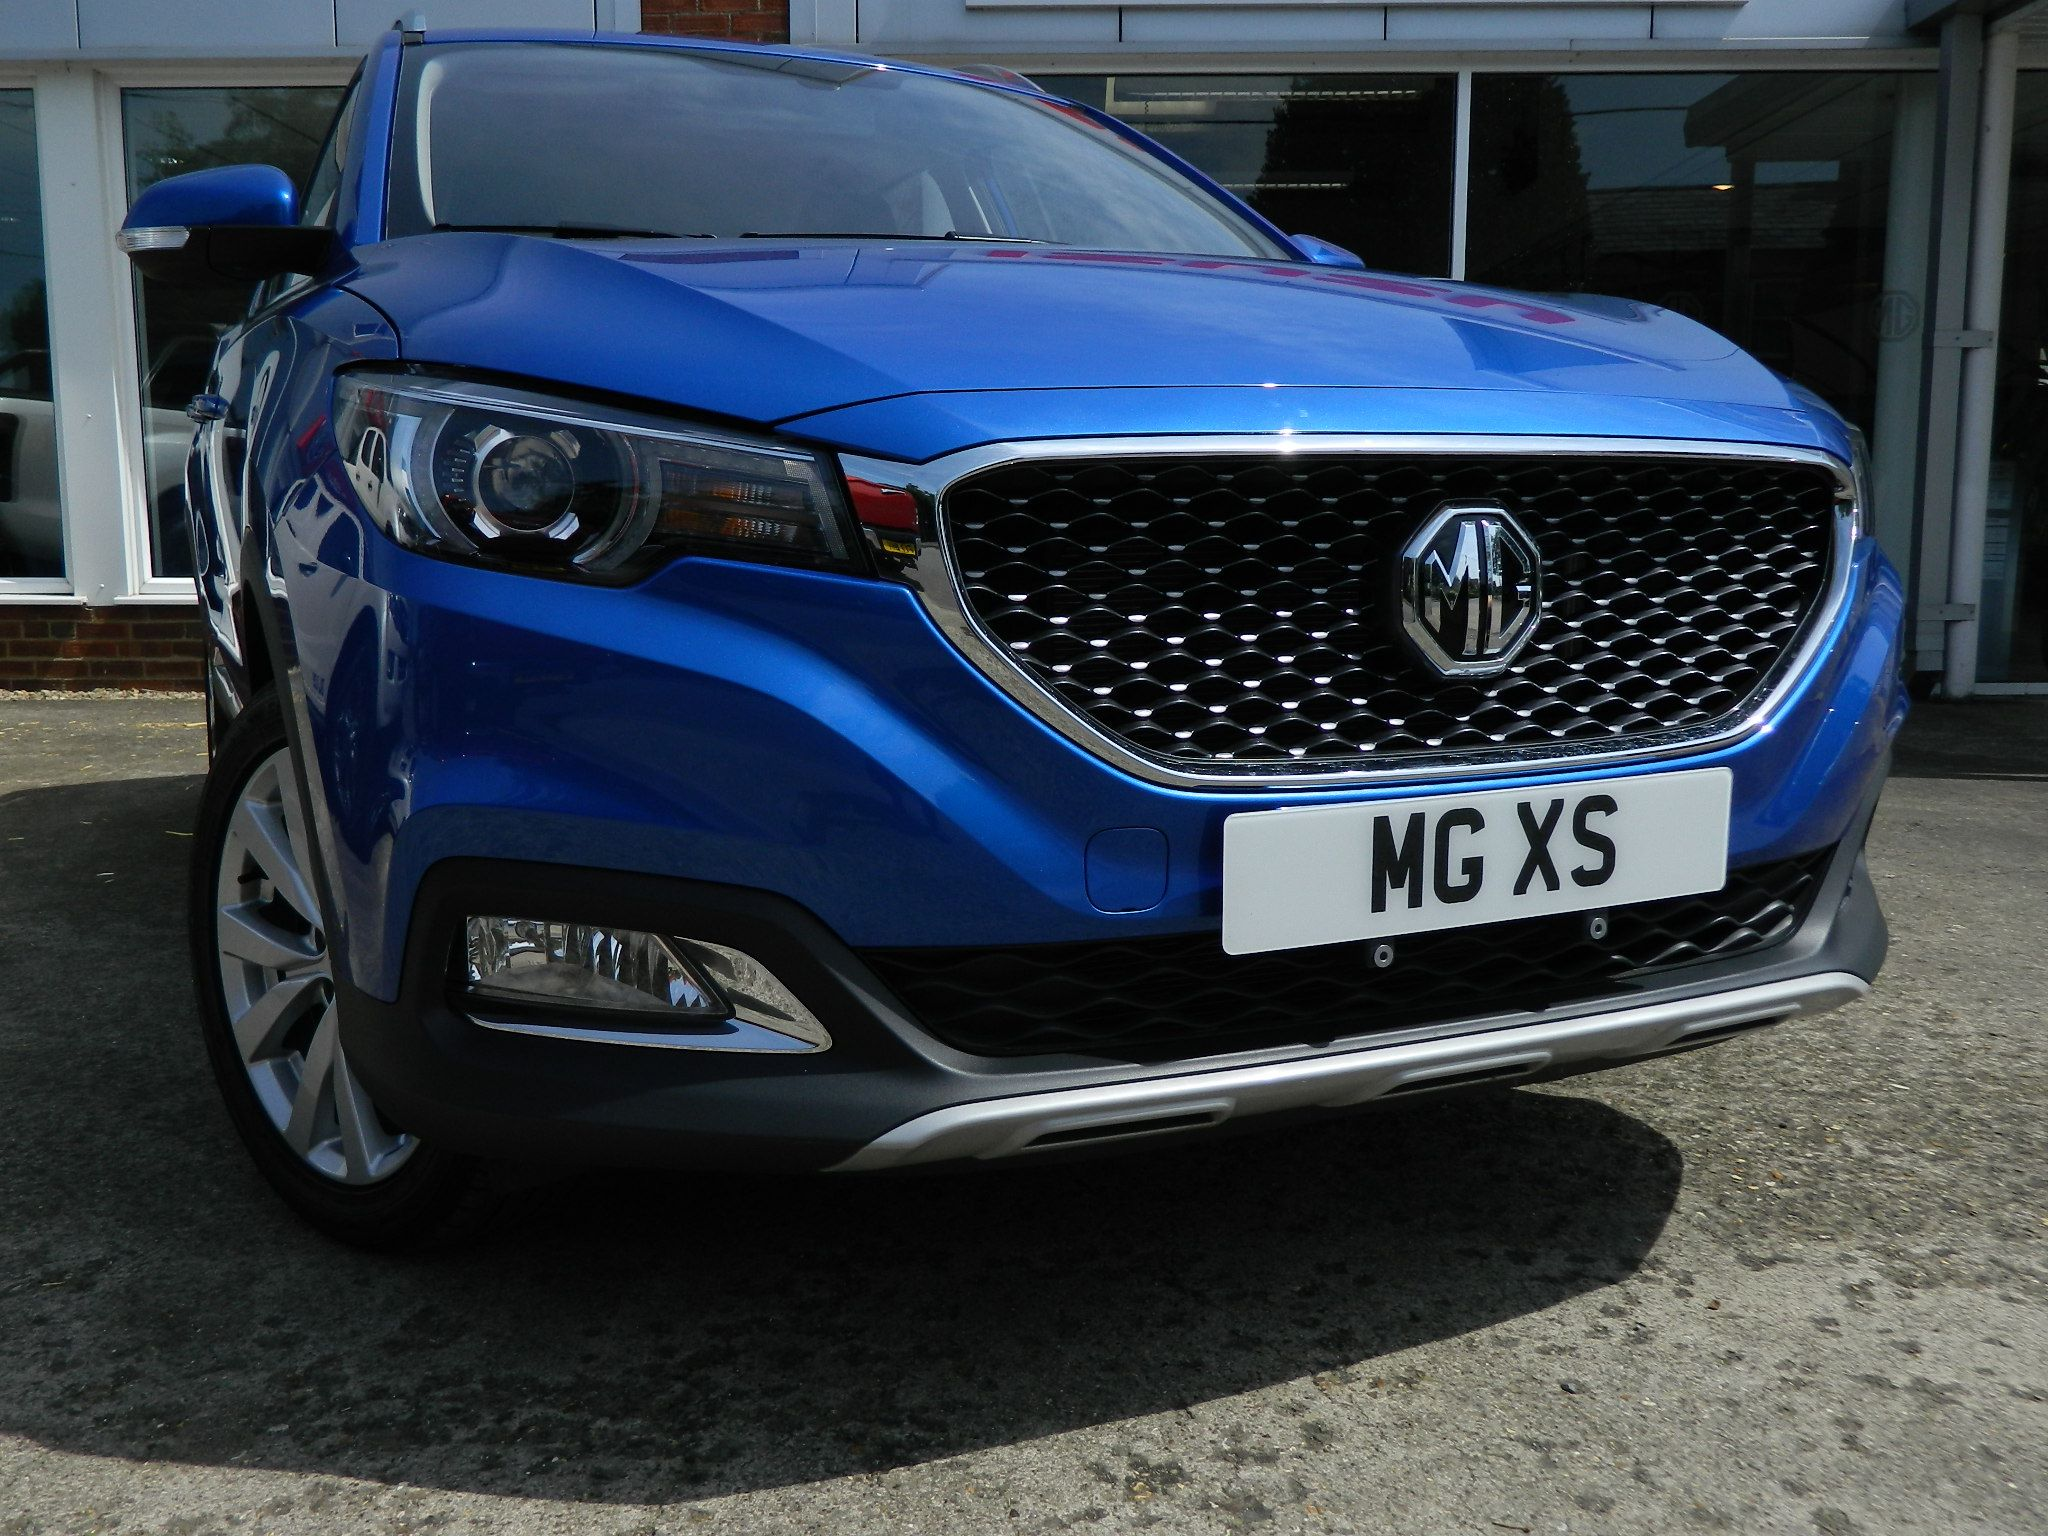 The New MG XS is ready to preview!